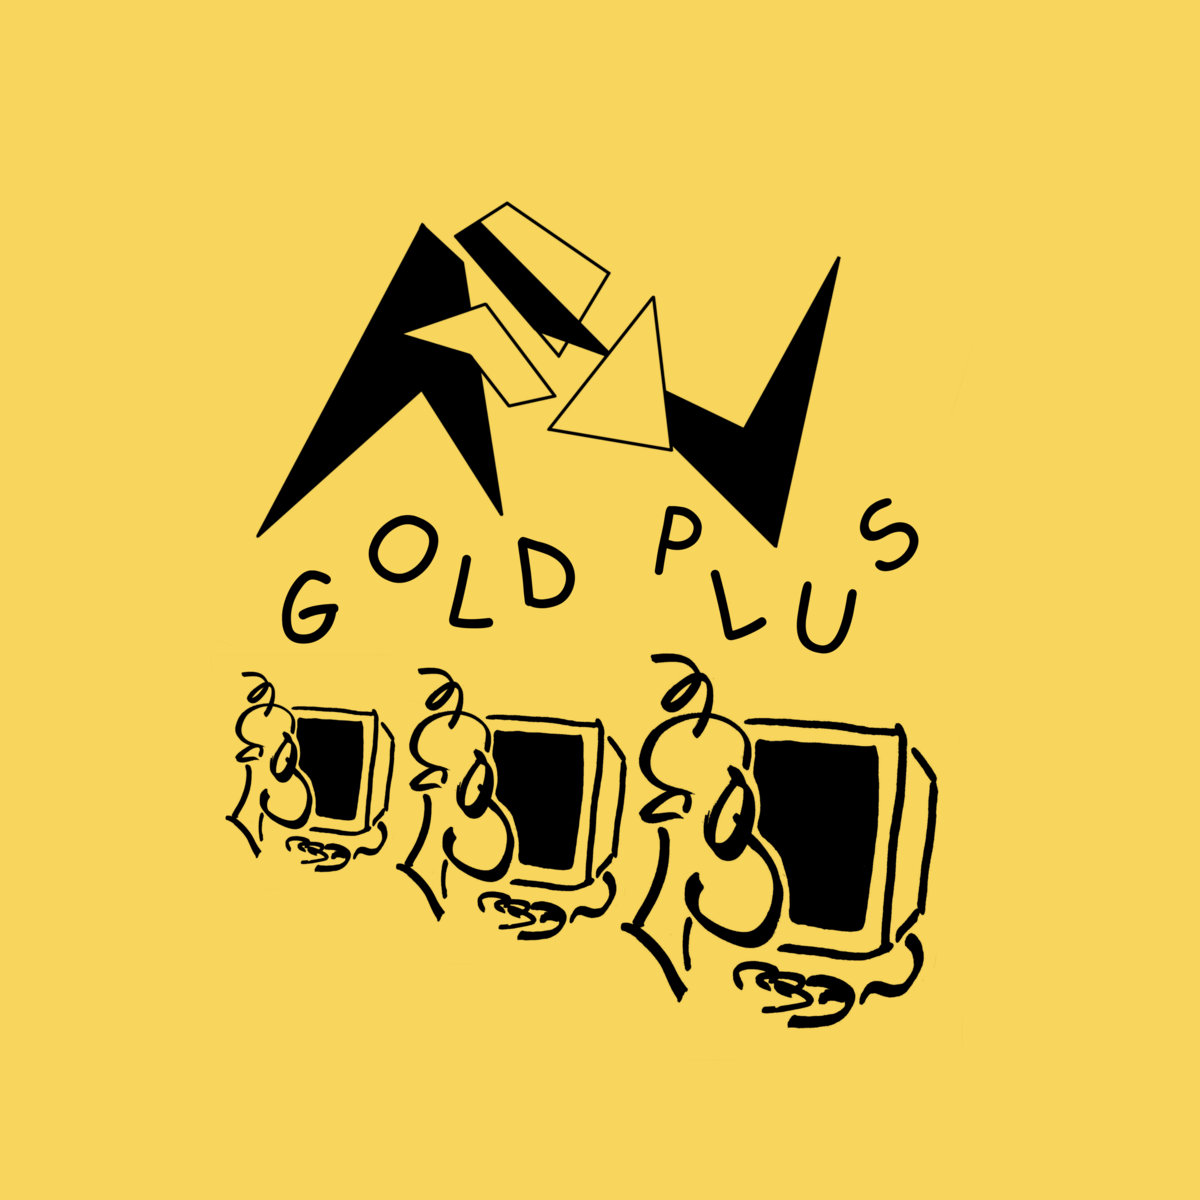 AOL - Gold Plus Tape